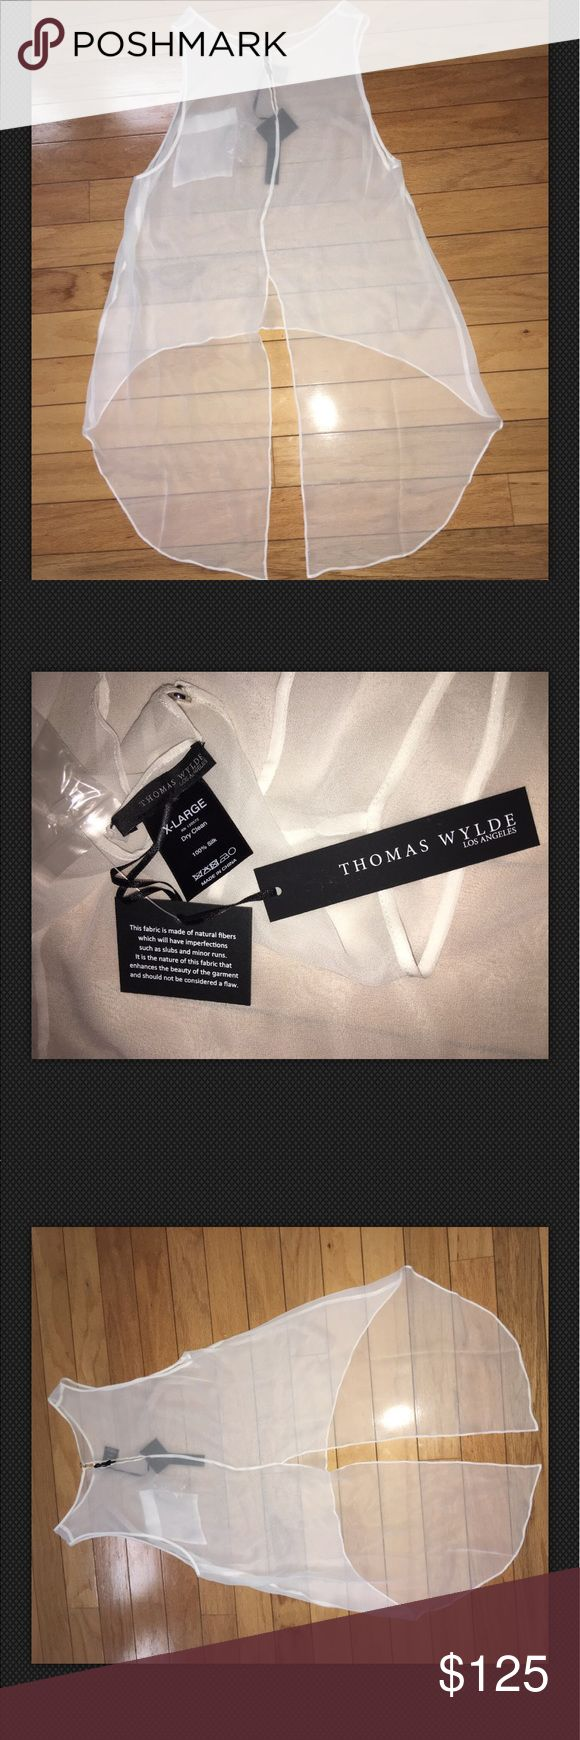 100% Authentic Thomas Wylde XL MSRP $165 100% Authentic Thomas Wylde XL MSRP $165 Material 100% Silk  Please note 100% Authentic wrinkles due too prepackaged 100% Authentic.       #300035/XL Thomas Wylde Tops Blouses